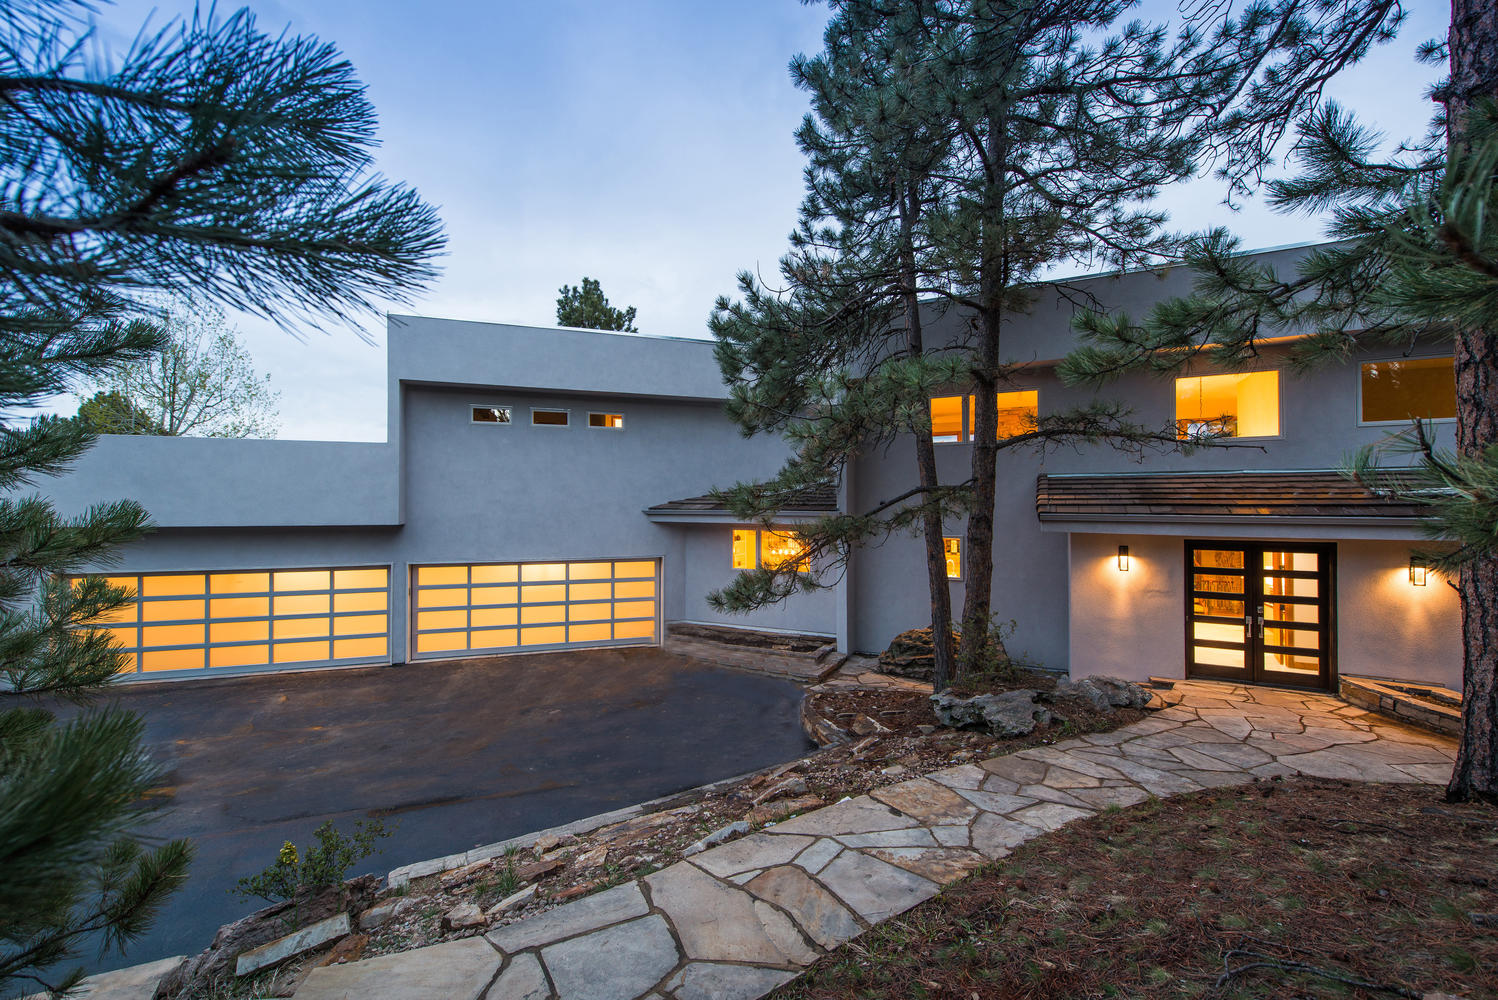 Single Family Home for Sale at Incredible Custom Home Has Timeless Architectural Lines 1992 Columbine Court Golden, Colorado 80401 United States